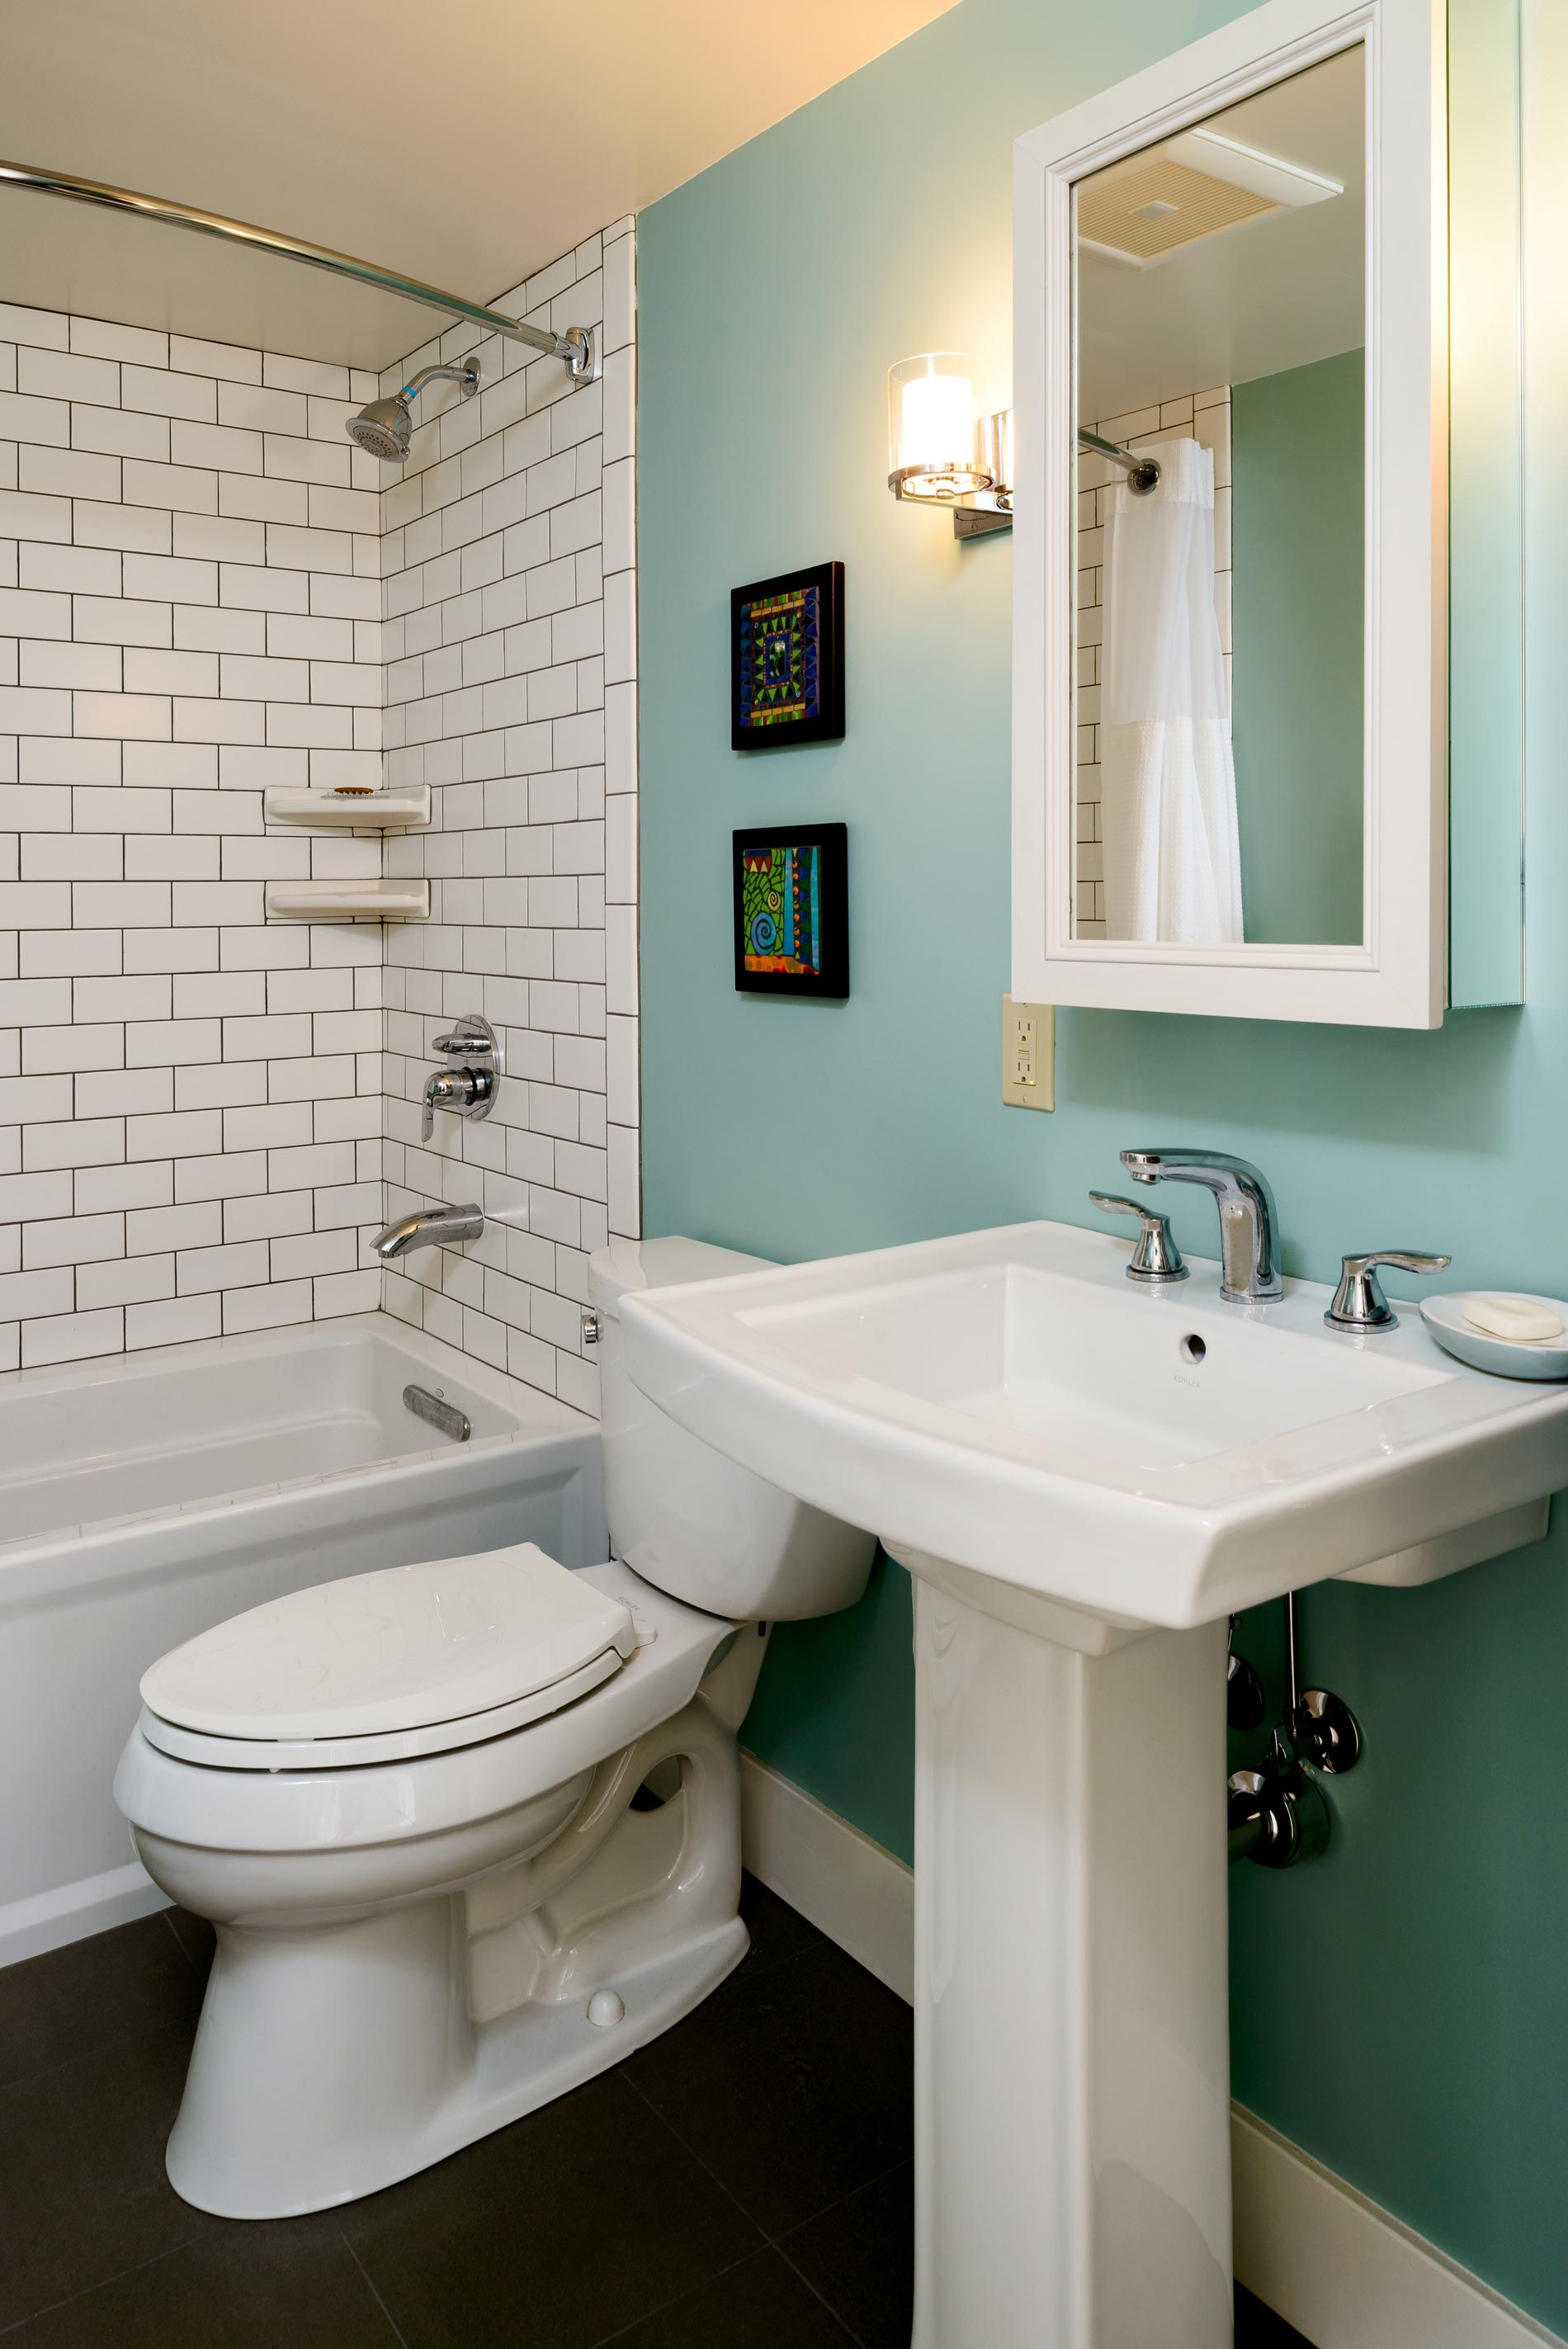 Bathroom remodel retro bathroom modern bathroom for Bath remodel pinterest